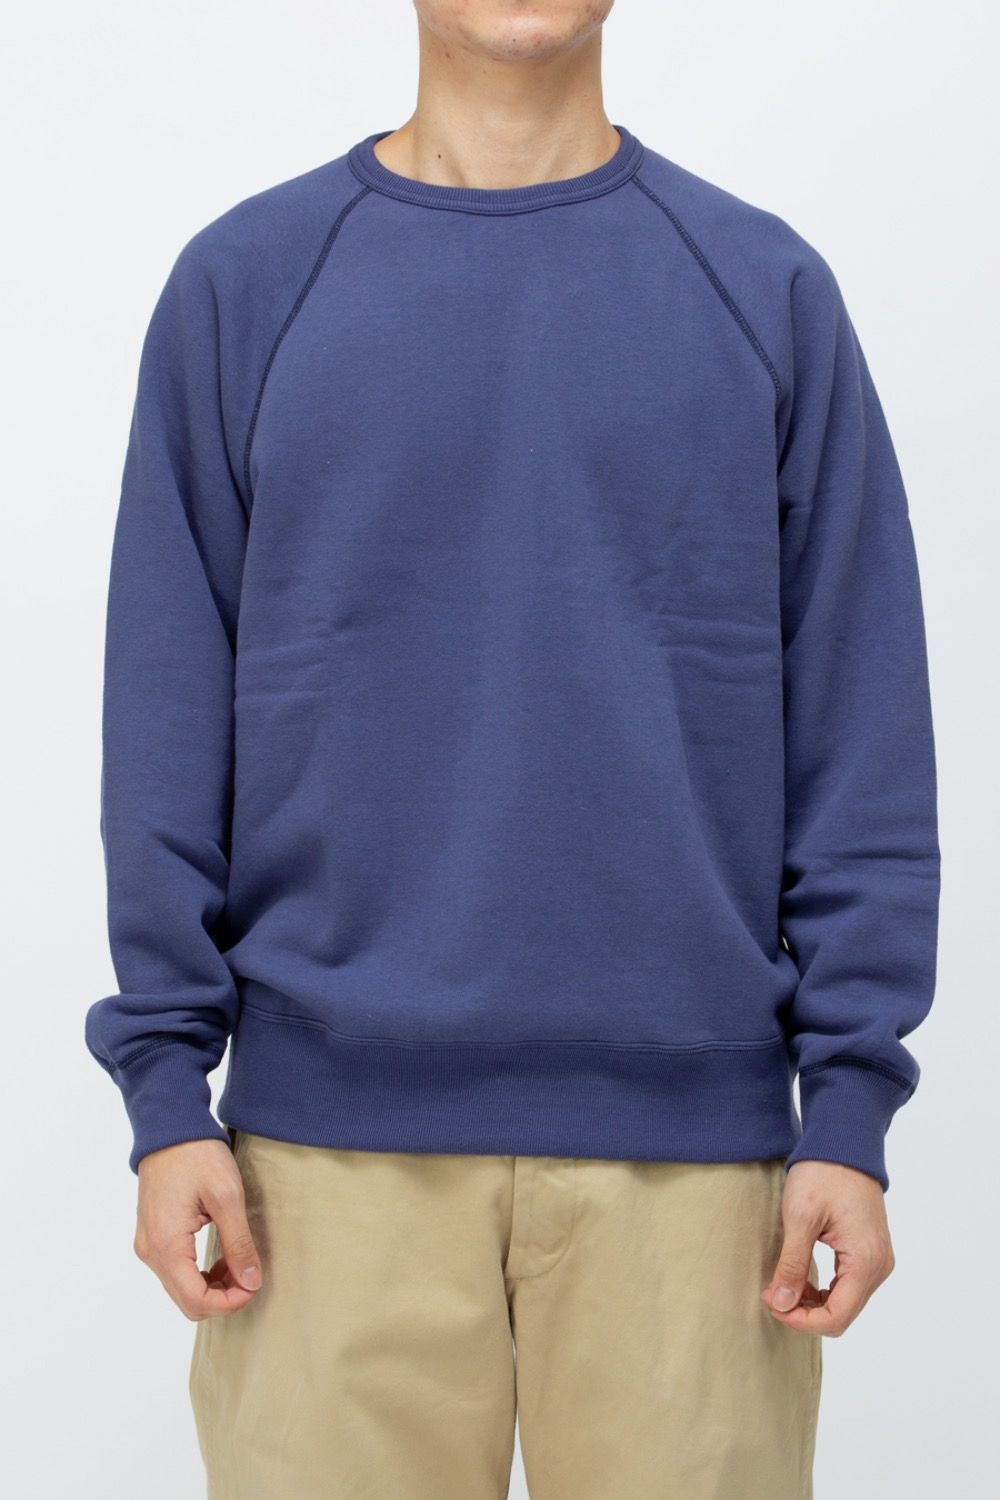 9oz. LOOPWHEEL RAGLAN SLEEVE SWEATSHIRT